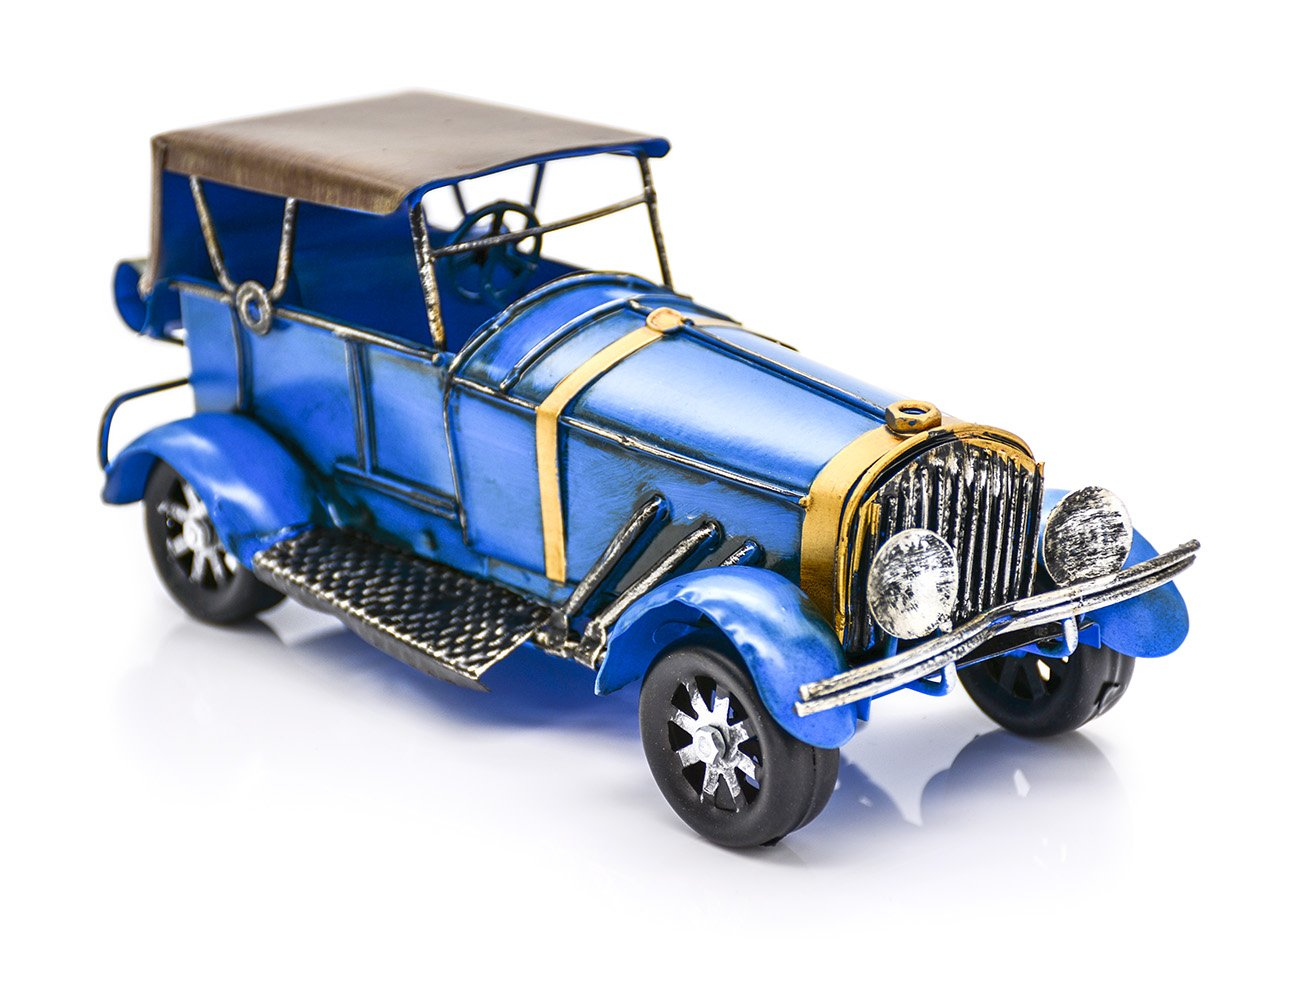 Metal Vintage Car Model Antique Car Toys For Decoration, Collection, Gift (Yellow) JLER